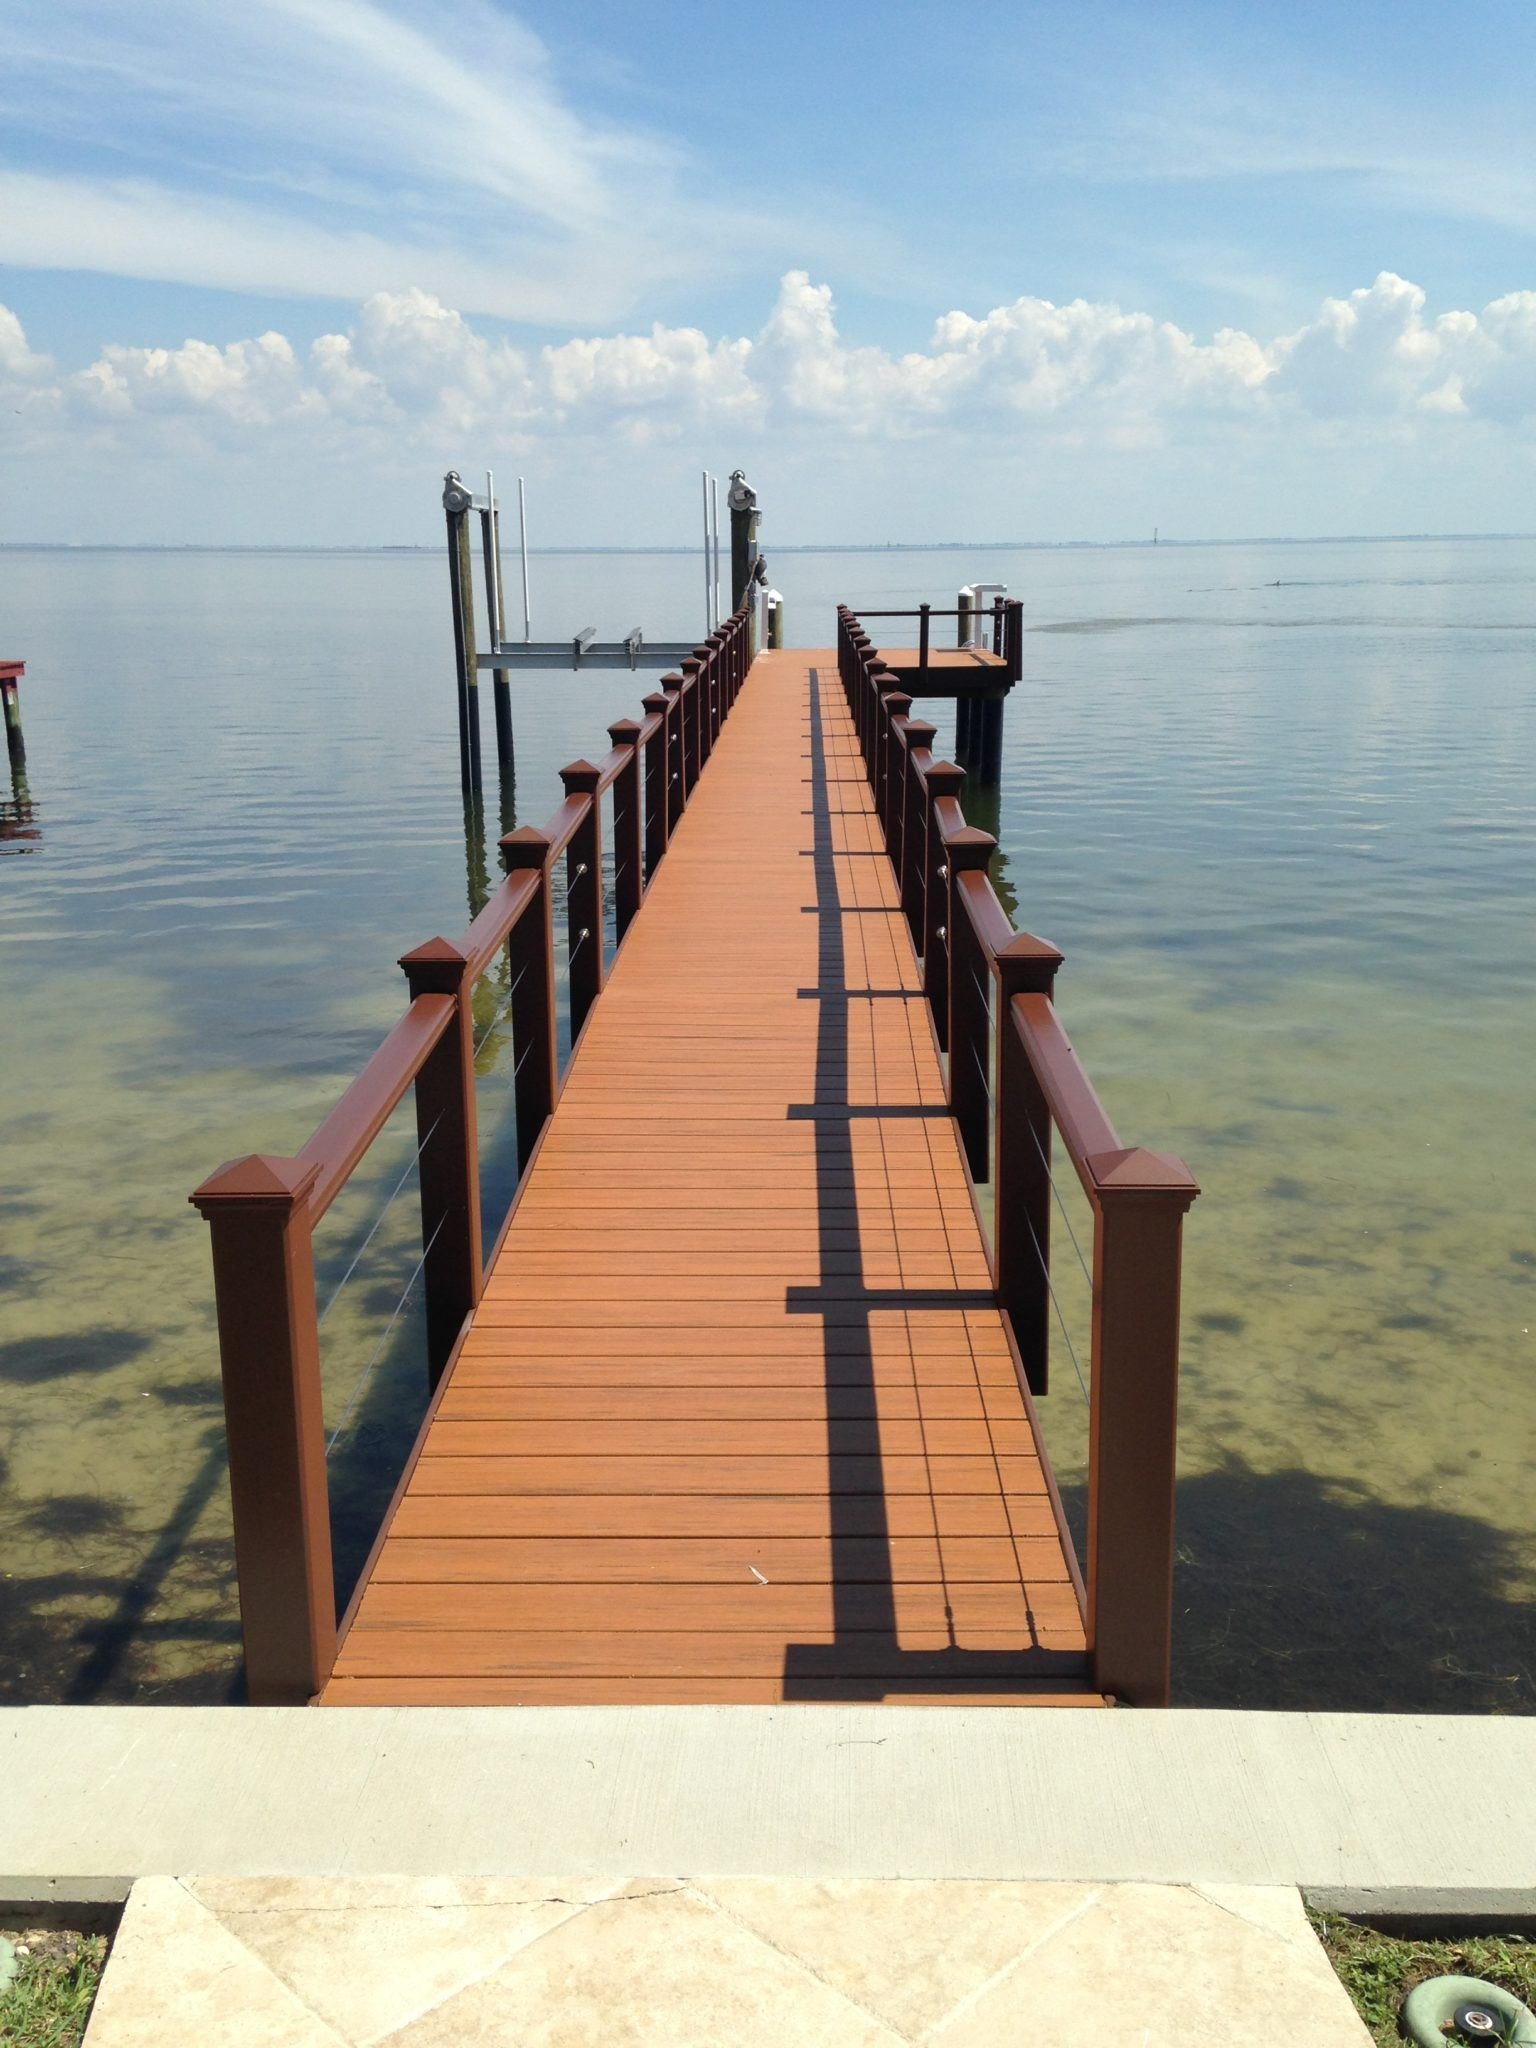 A Trex stationary dock with Trex composite handrail with cable railing